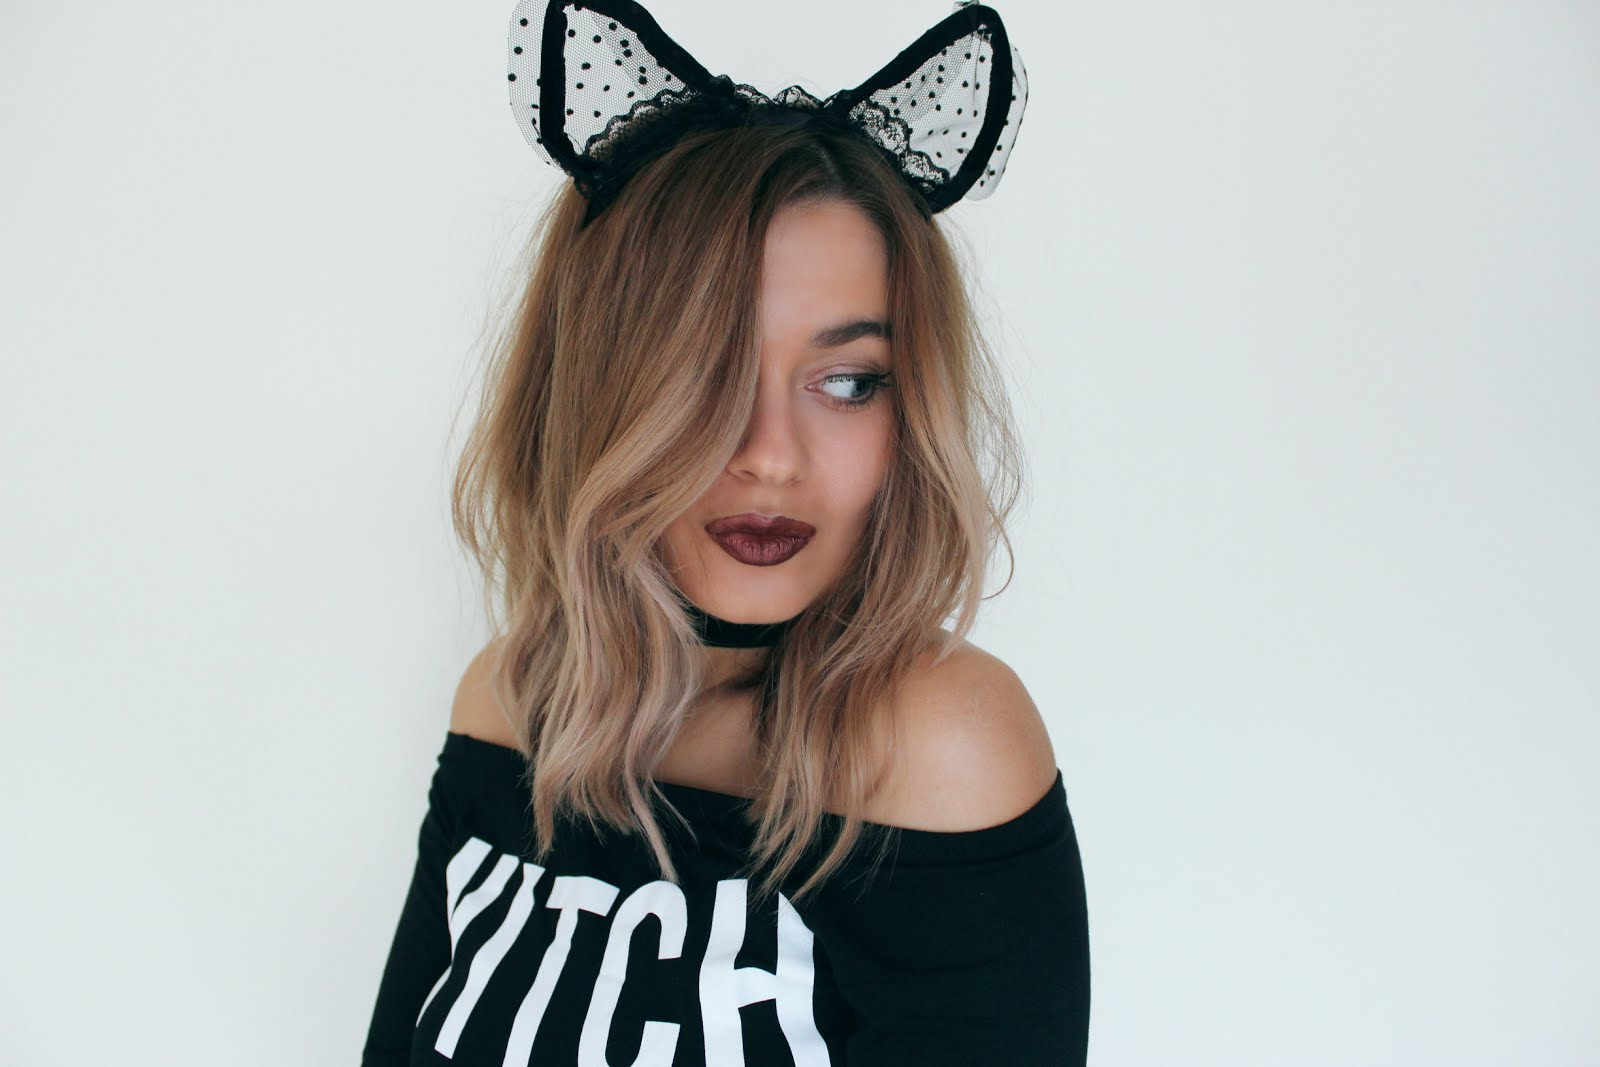 HALLOWEEN OUTFIT INSPIRATION